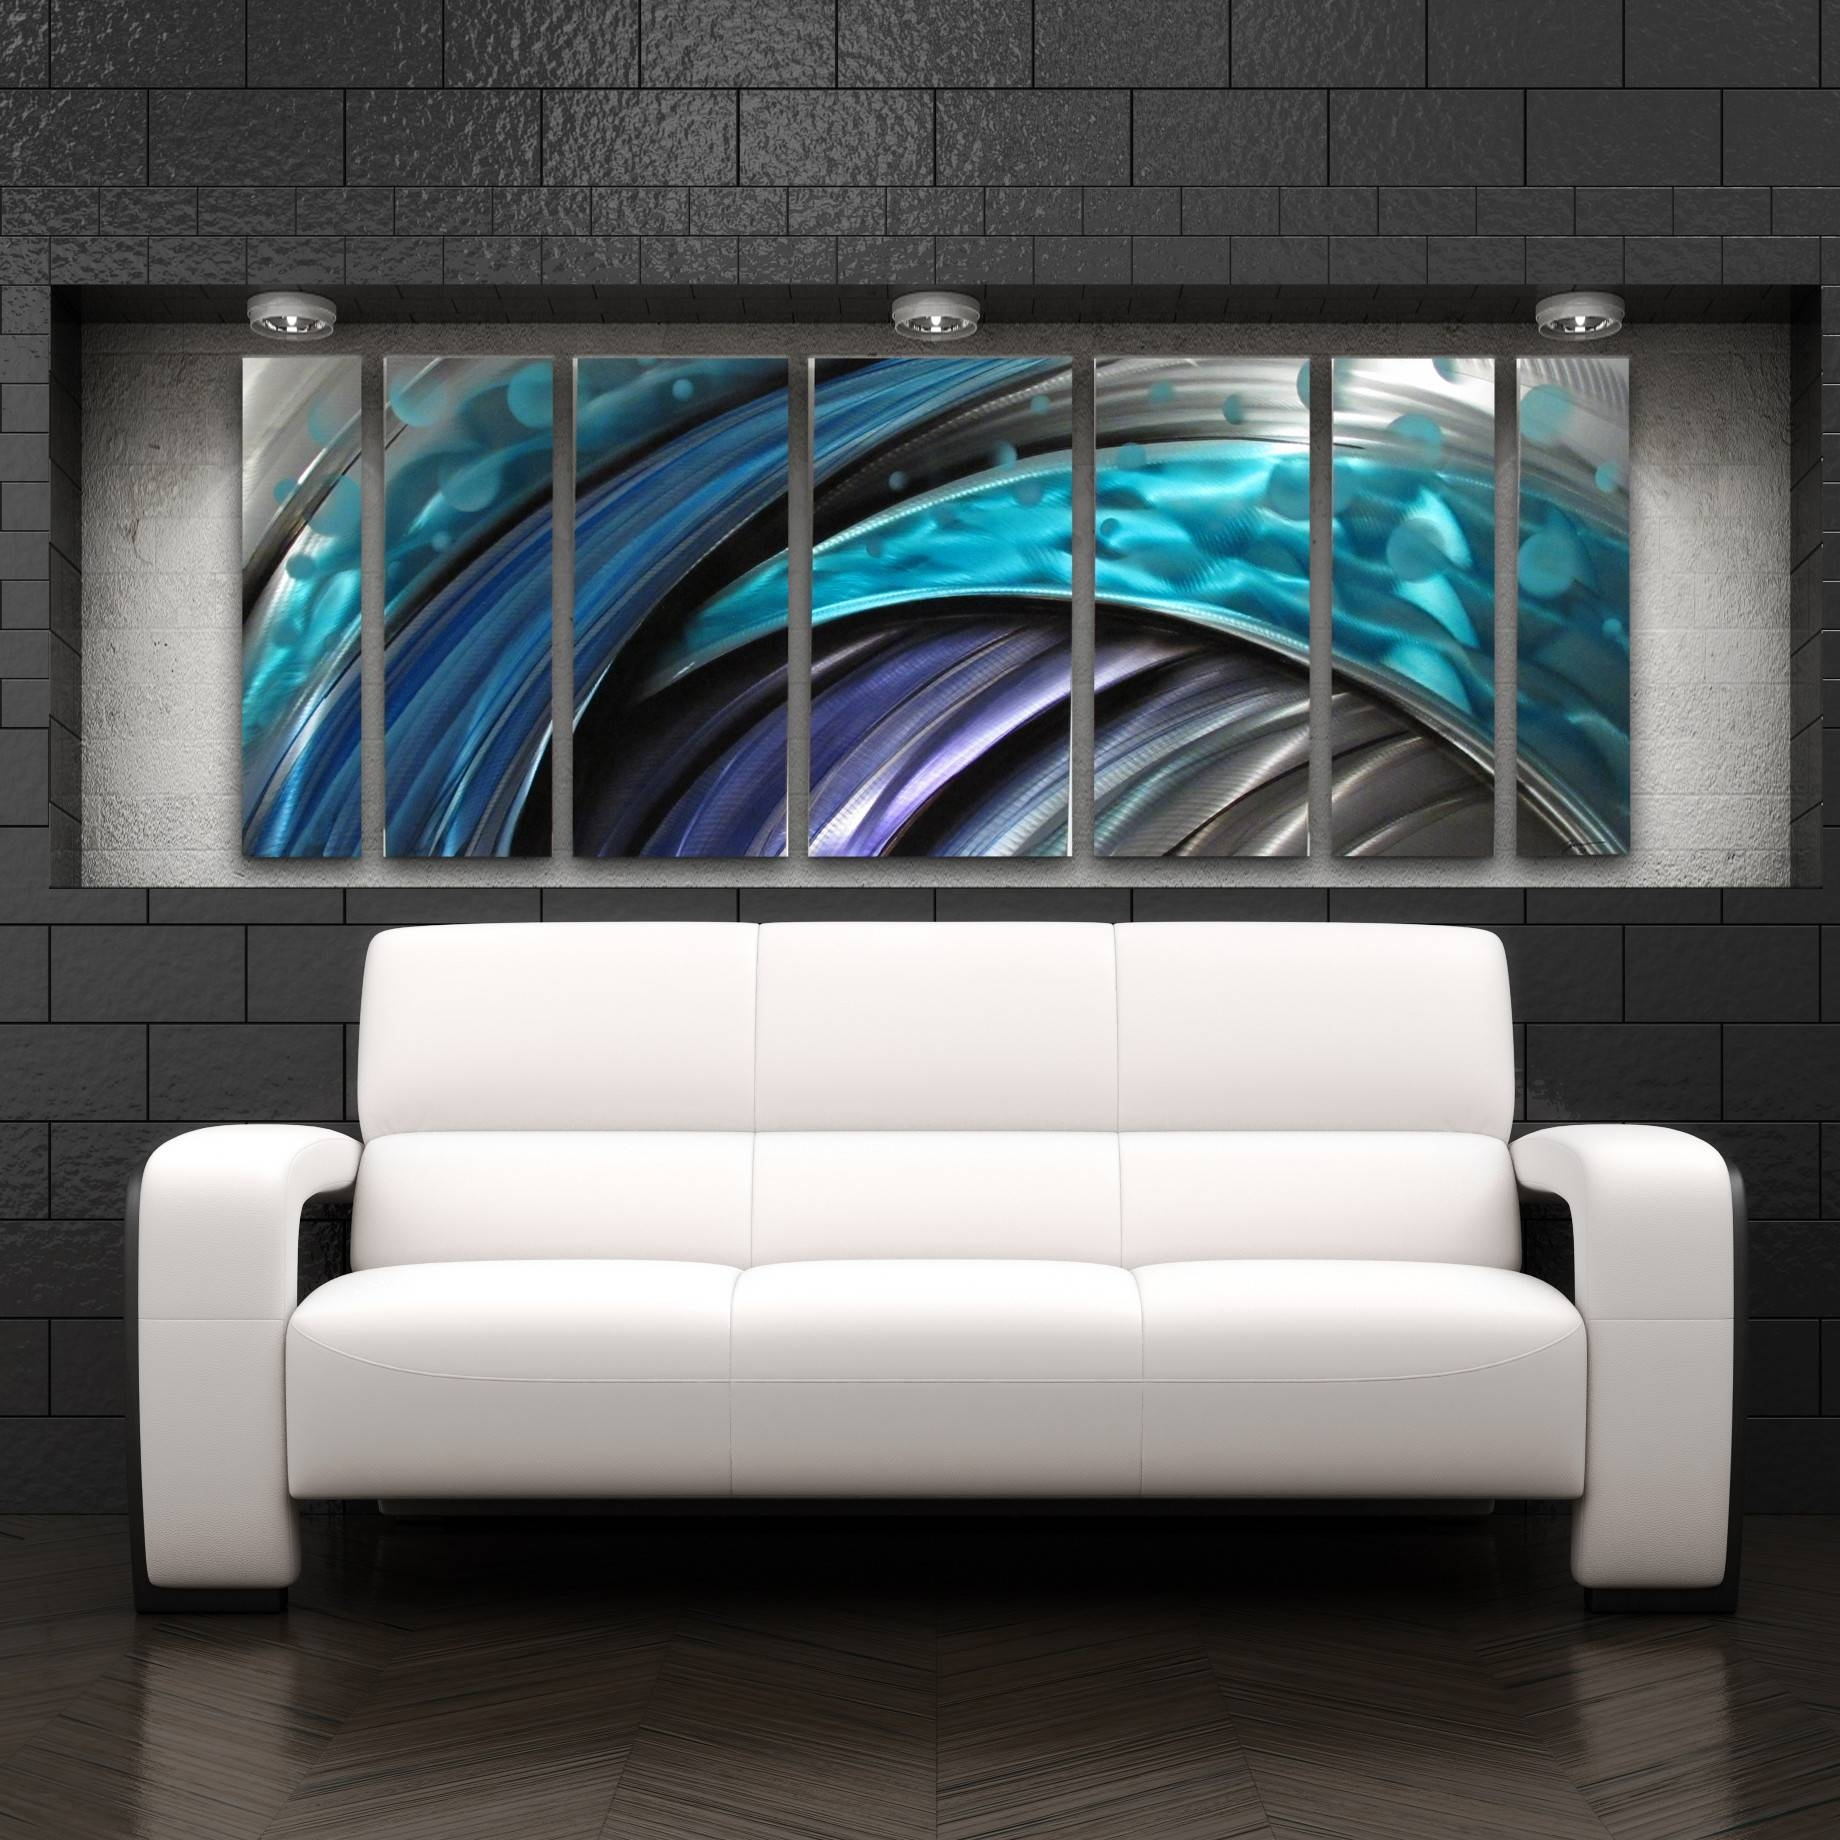 Wall Art Modern As Wall Art Decals On Oversized Wall Art Inside Newest Oversized Modern Wall Art (View 2 of 20)